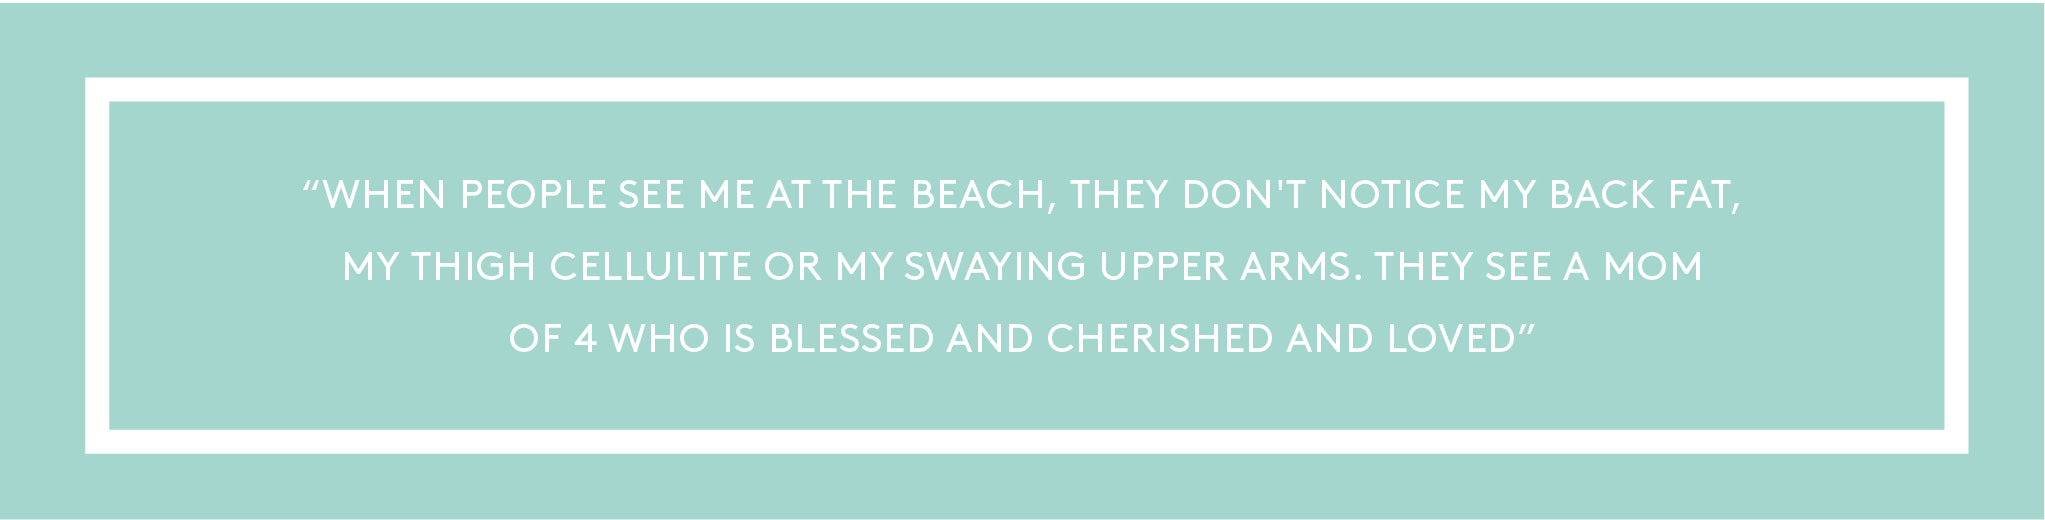 ''When people see me at the beach, they don't notice my back fat, my thigh cellulite or my swaying upper arms. They see a mom of 4 who is blessed and cherished and loved.''